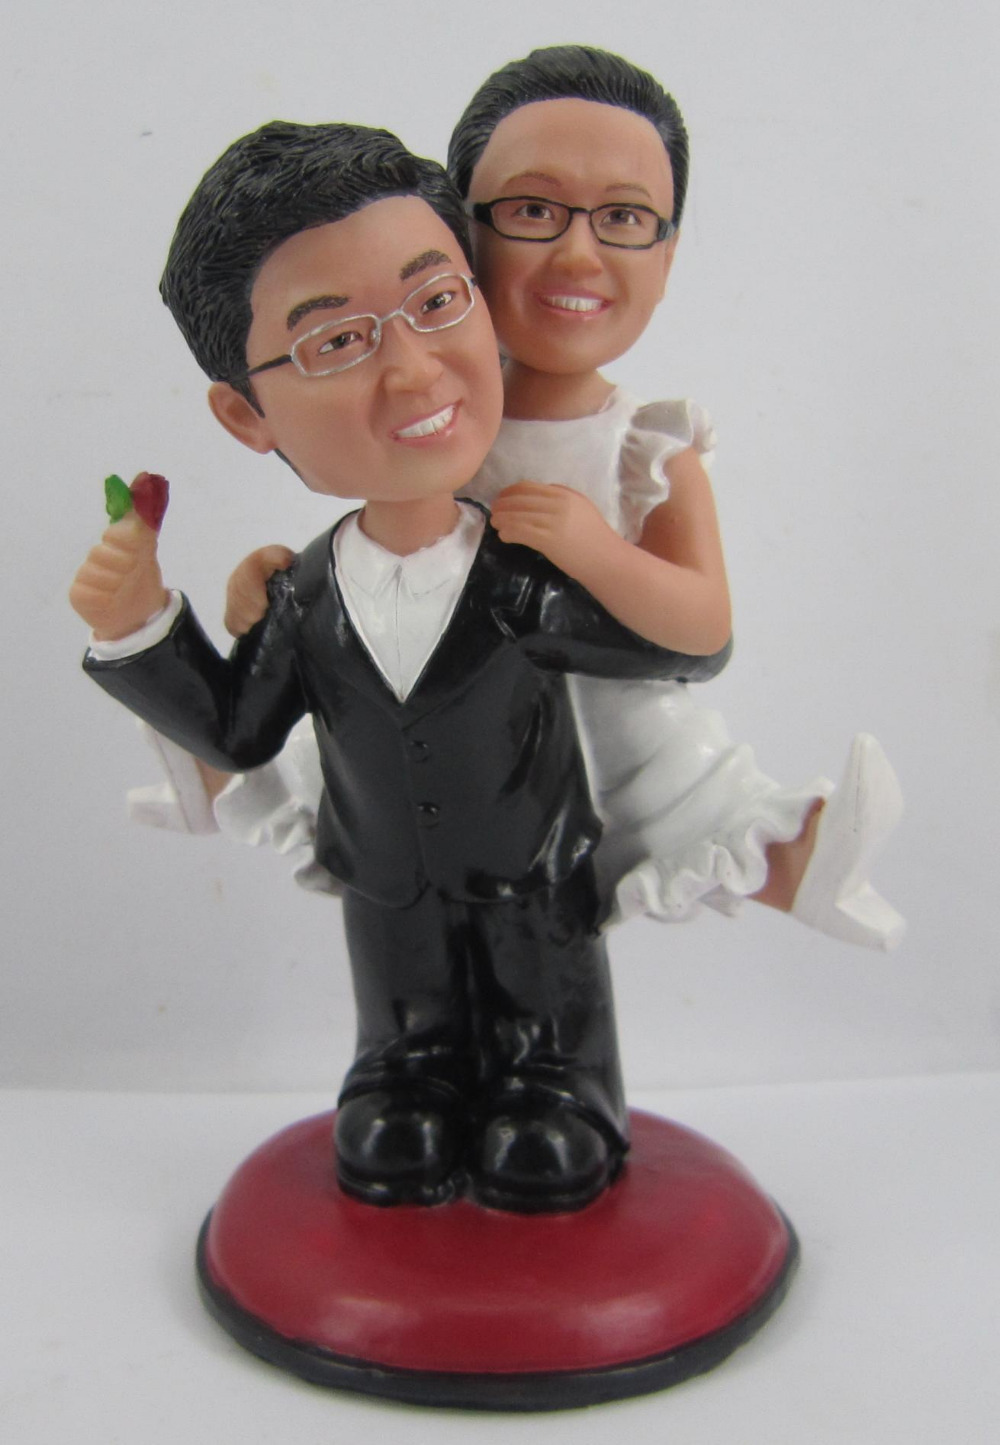 Personalized bobblehead doll carry me wedding gift wedding decoration fixed polyresin body + polyresin head Custom doll(China (Mainland))